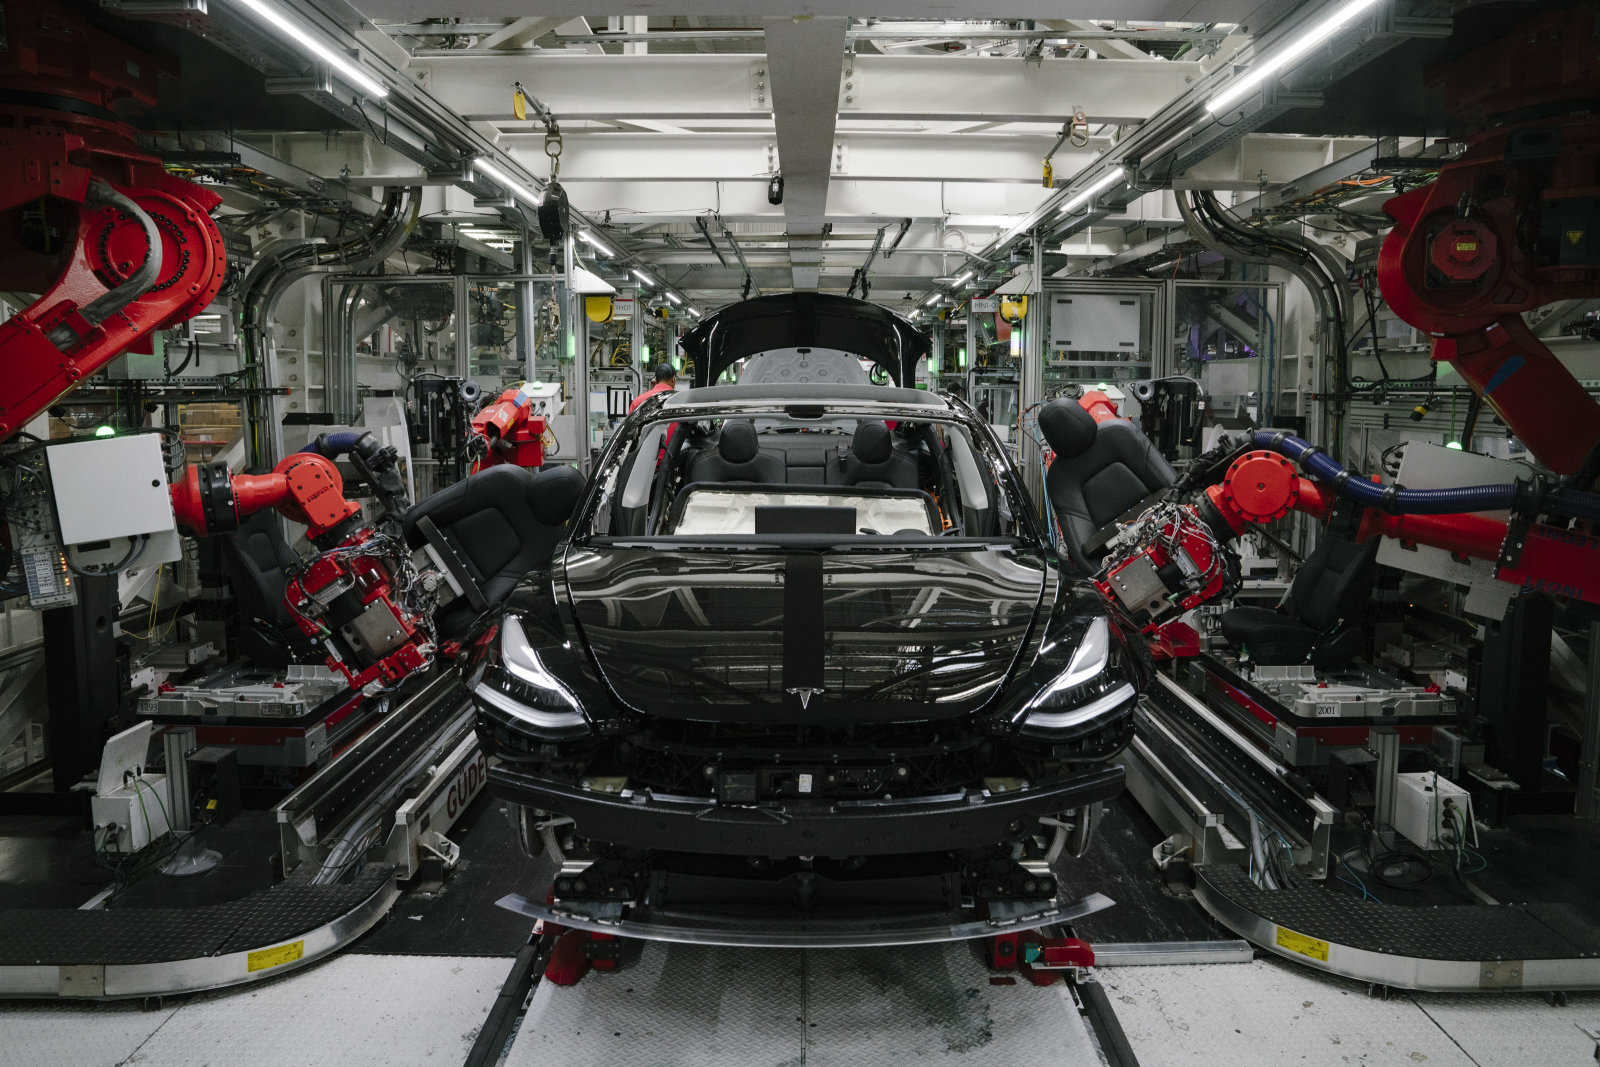 FREMONT, CA - JULY 26: Robotics arms install the front seats to the Tesla Model 3 at the Tesla factory in Fremont, California, on Thursday, July 26, 2018. (Photo by Mason Trinca for The Washington Post via Getty Images)